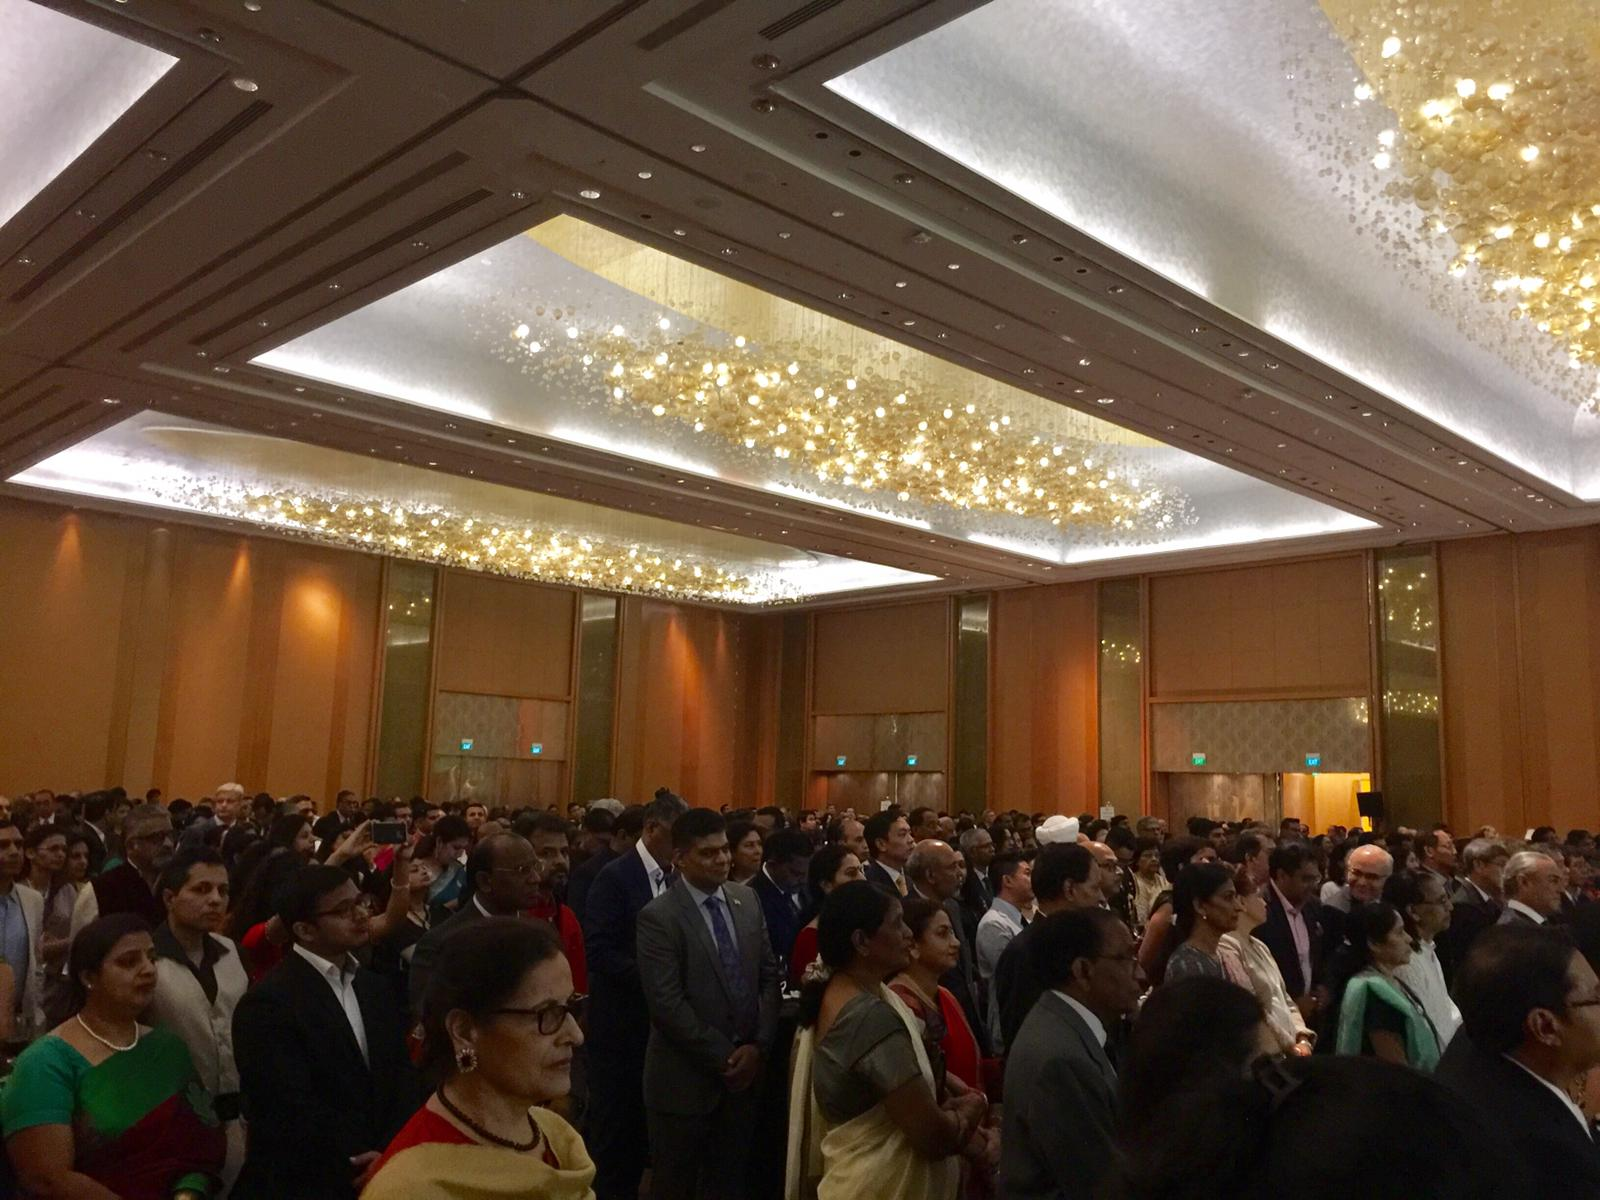 Members of Indian diaspora at the grand celebrations of India's 70th Republic Day at the Marina Bay Sands hotel Photo: Connected to India